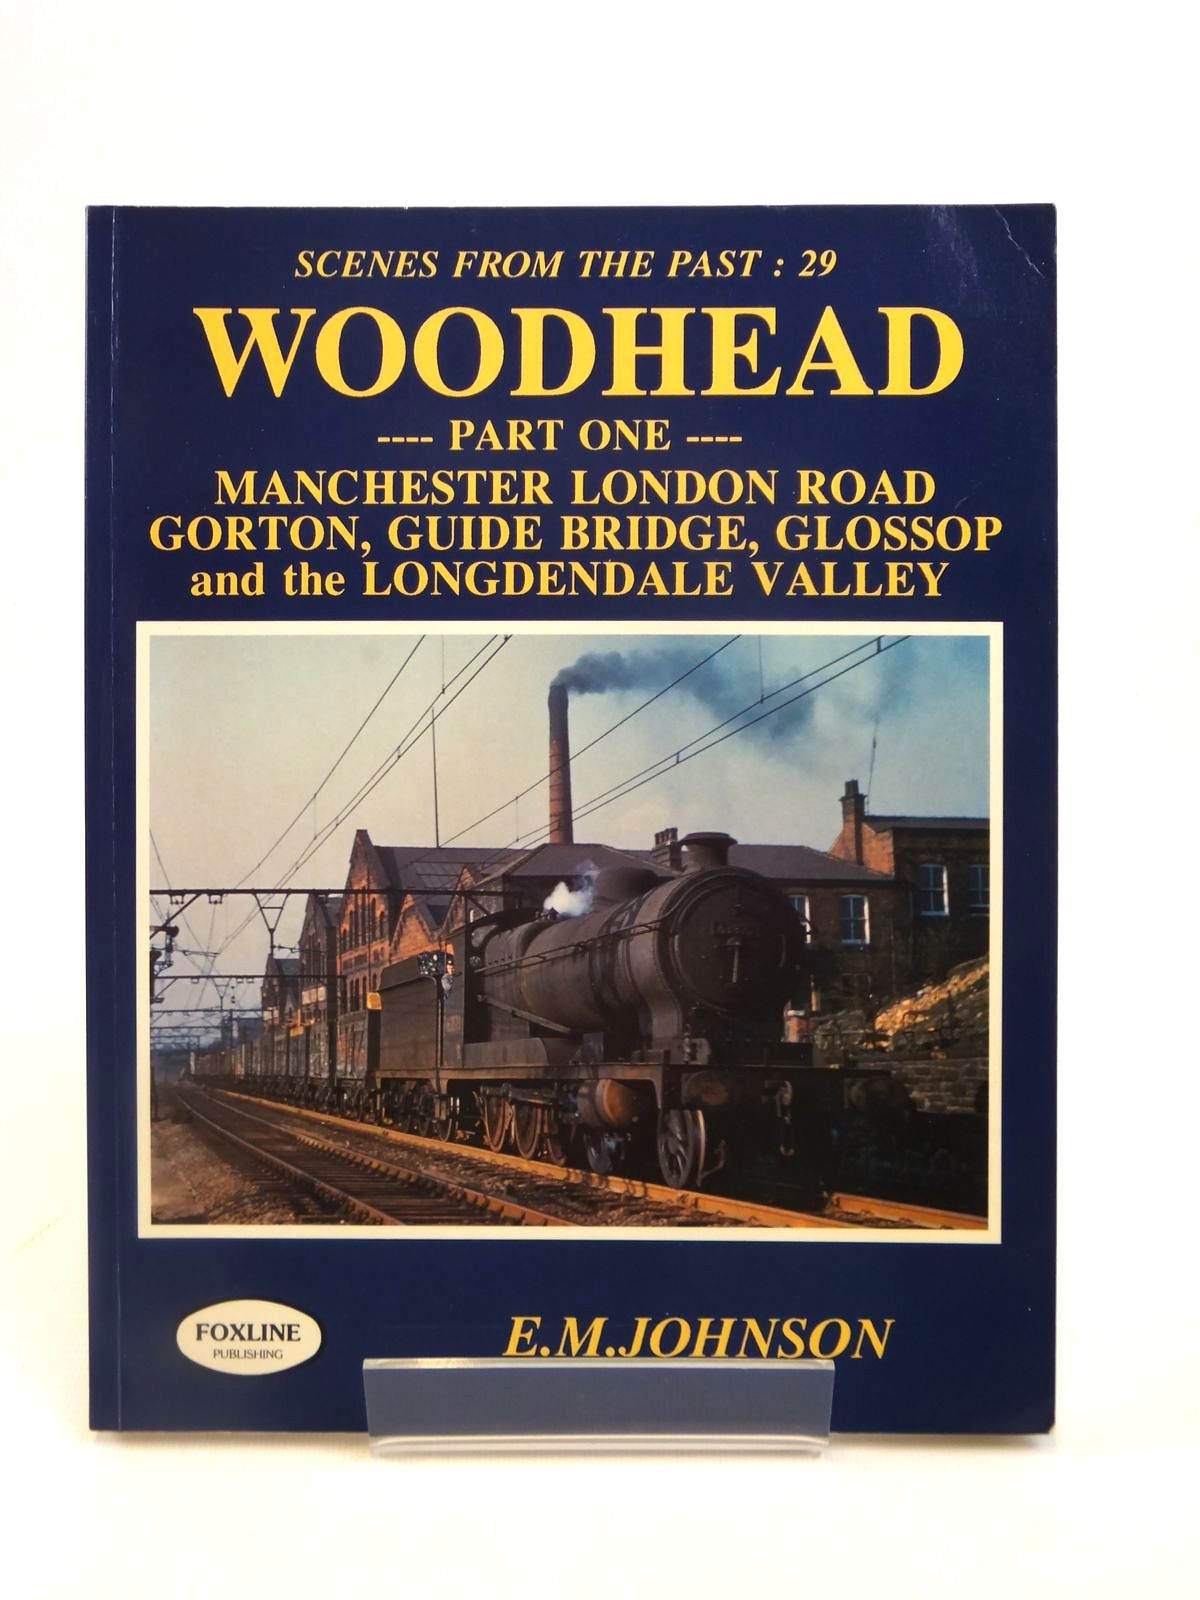 Photo of WOODHEAD PART ONE MANCHESTER LONDON ROAD GORTON, GUIDE BRIDGE, GLOSSOP AND THE LONGENDALE VALLEY (SCENES FROM THE PAST: 29) written by Johnson, E.M. published by Foxline (STOCK CODE: 1812613)  for sale by Stella & Rose's Books